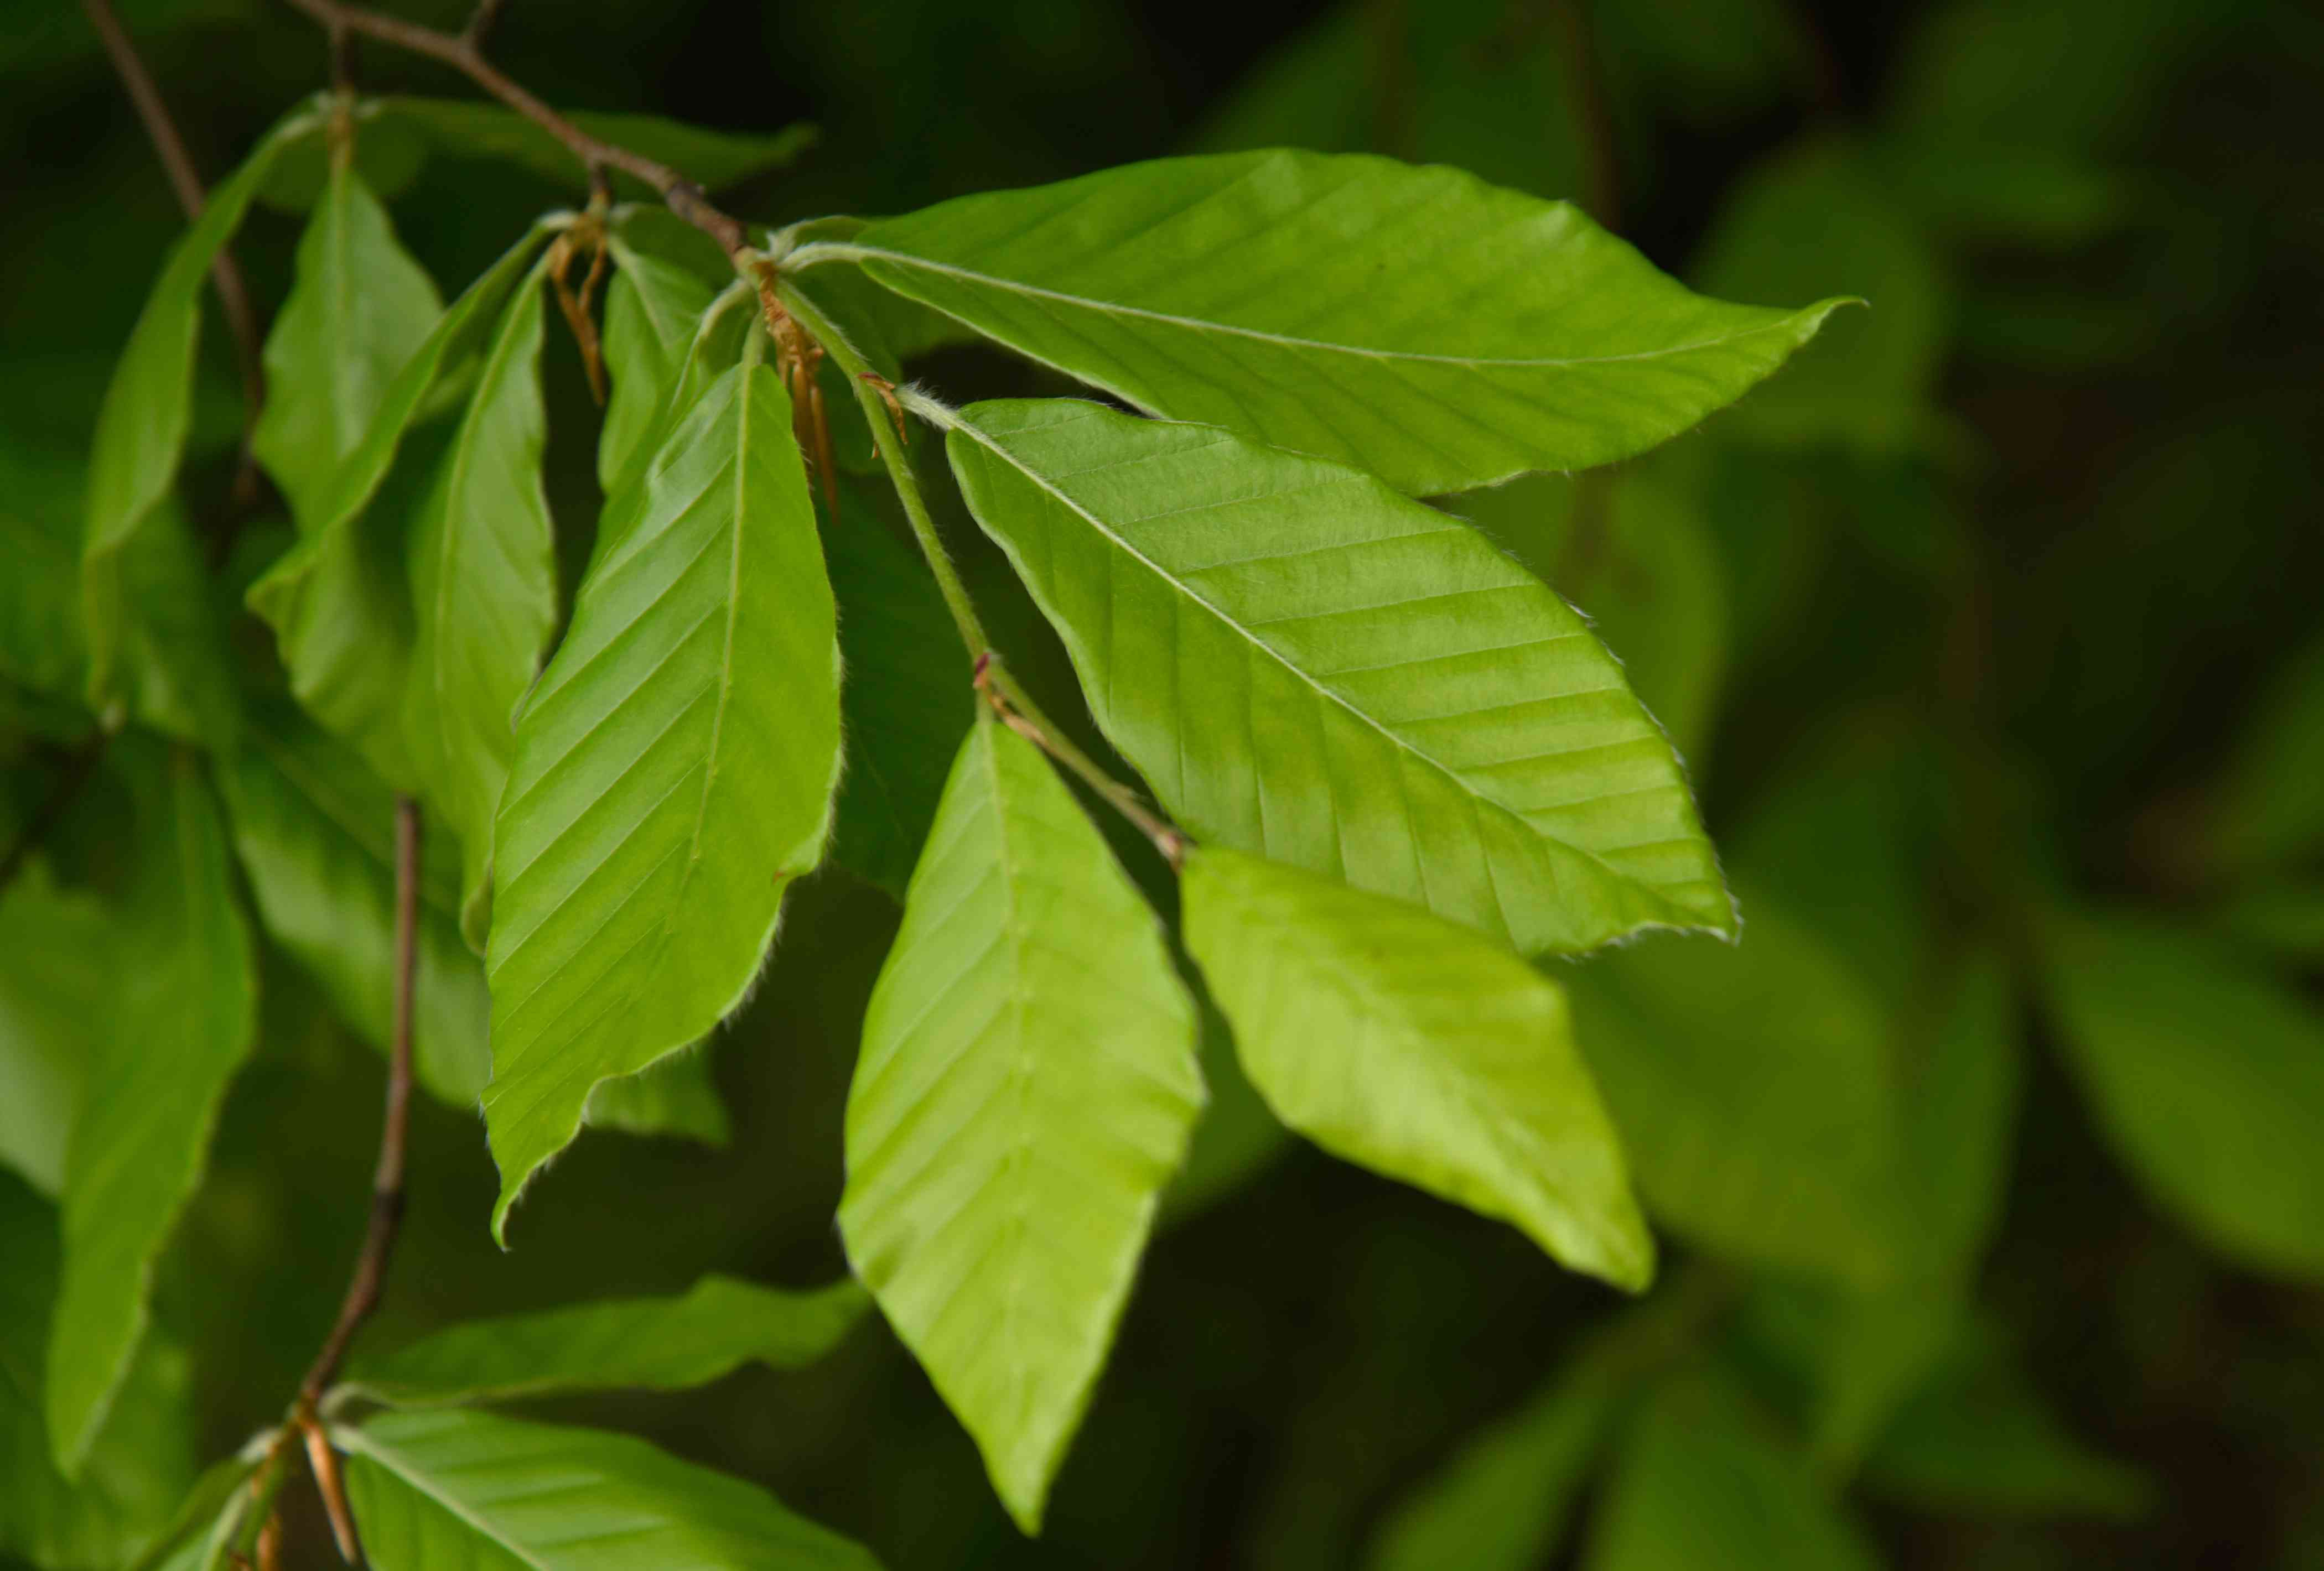 American beech tree leaves with prominent veins and toothy edges closeup